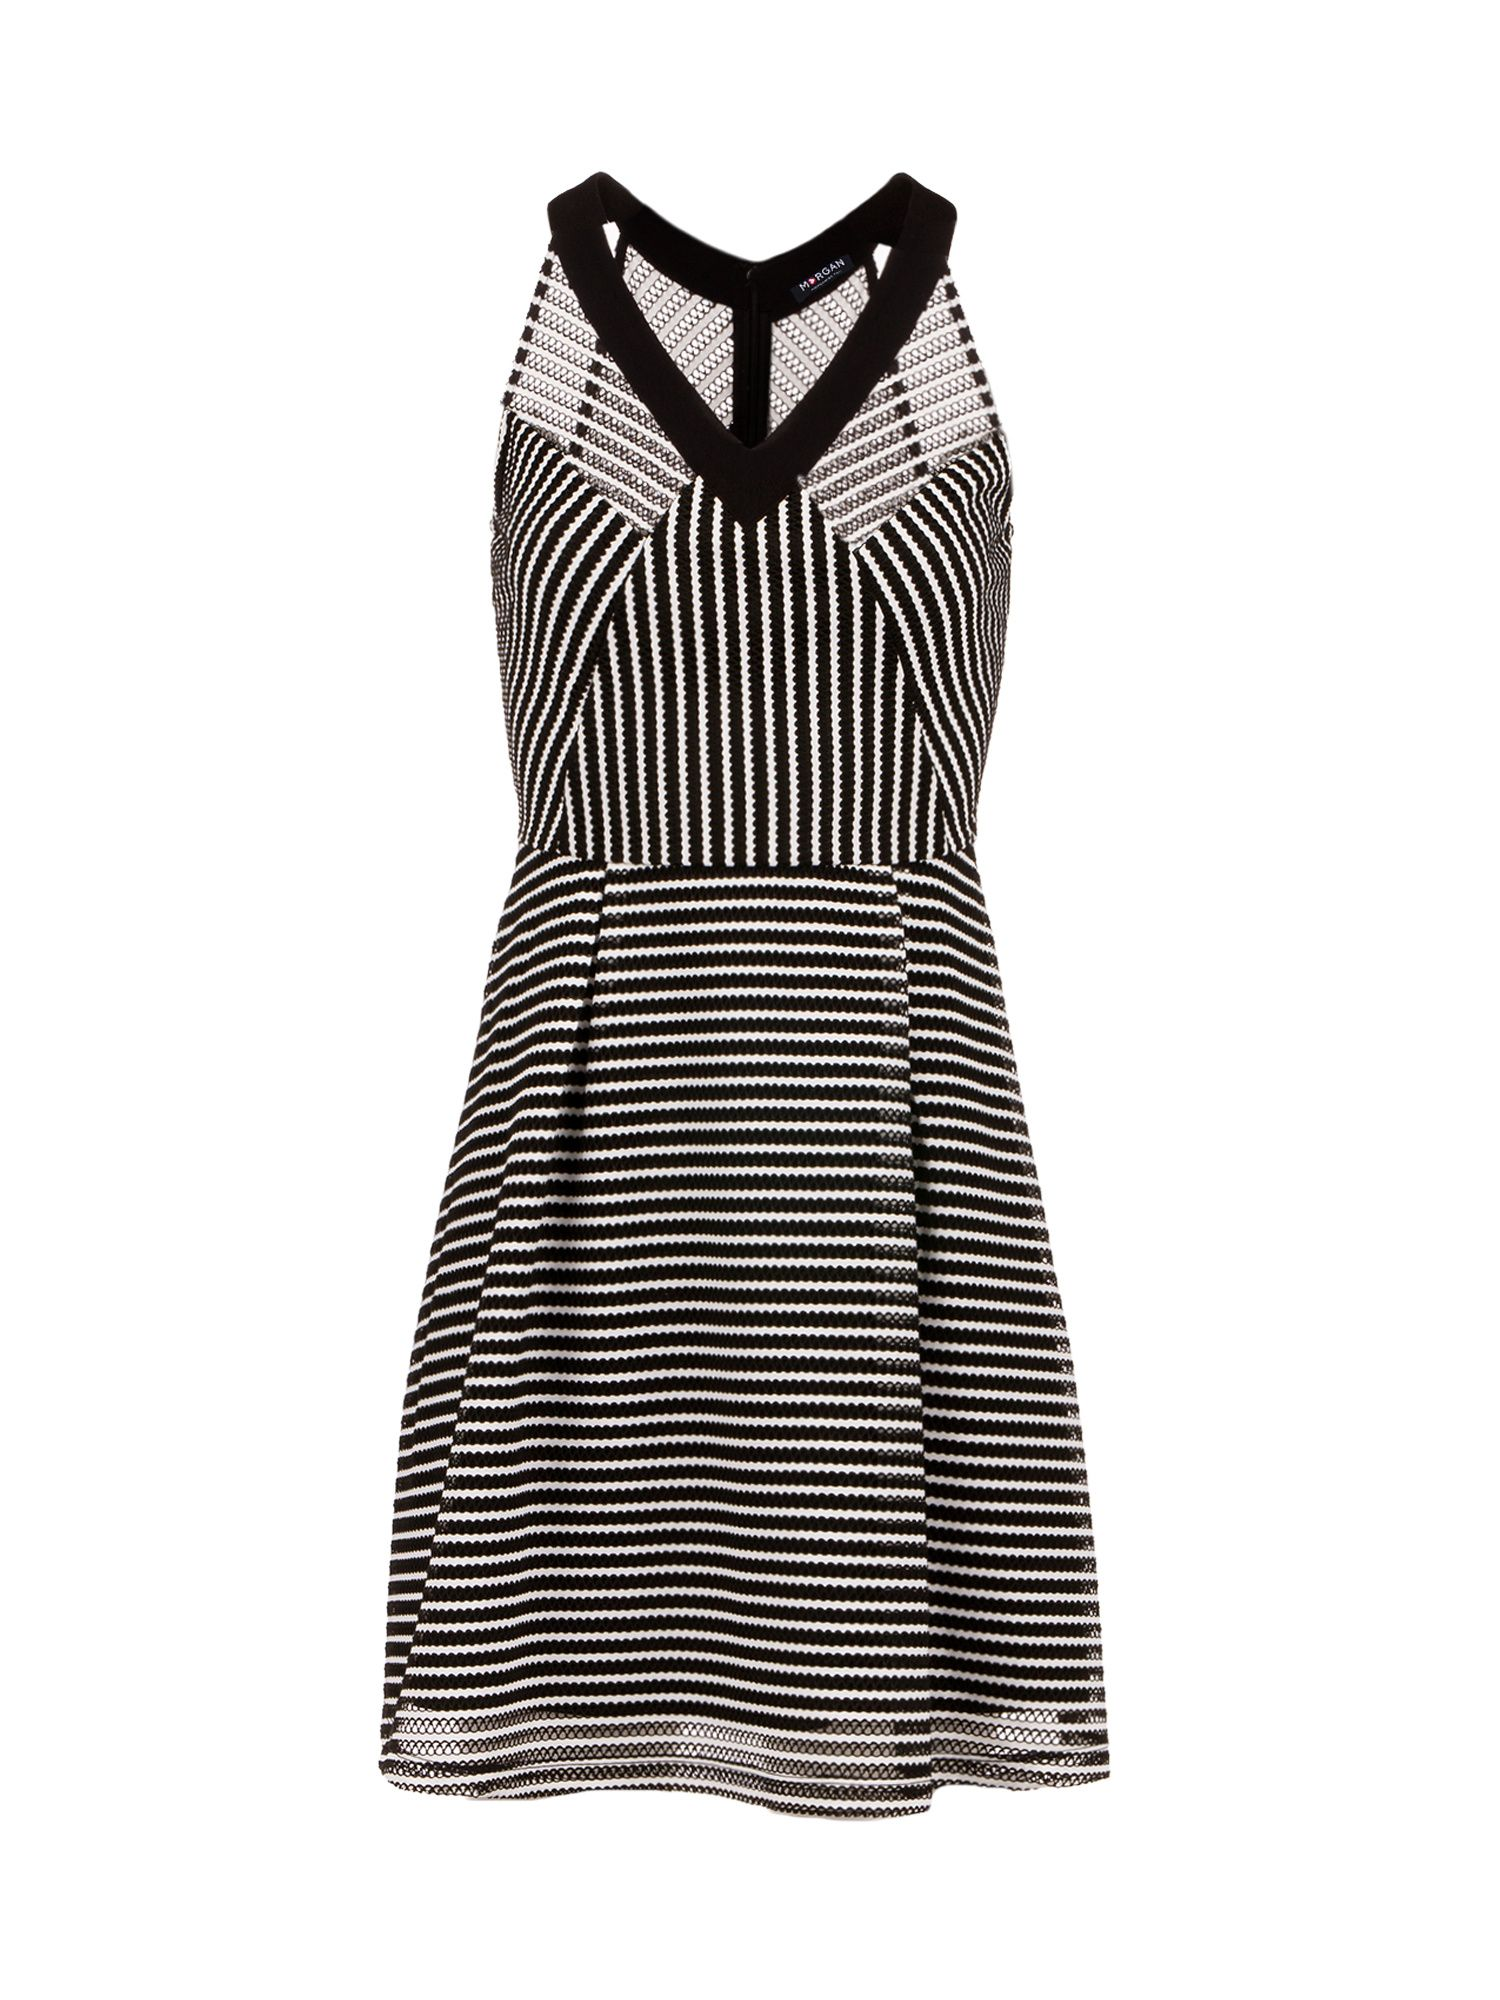 Morgan Two-Tone Openwork Knit Skater Dress, Black